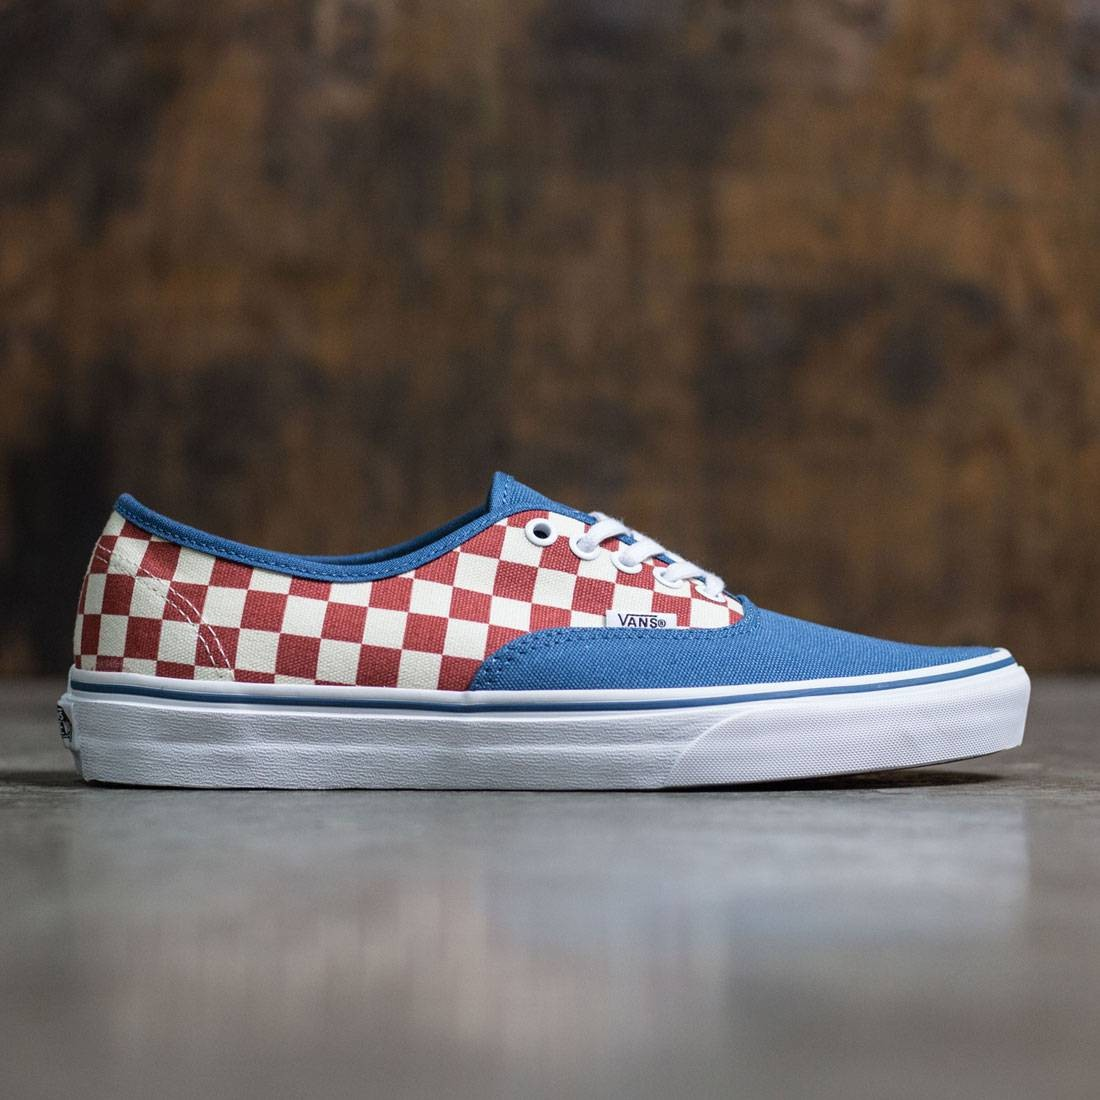 091c0e2381d Buy red and blue checkered vans